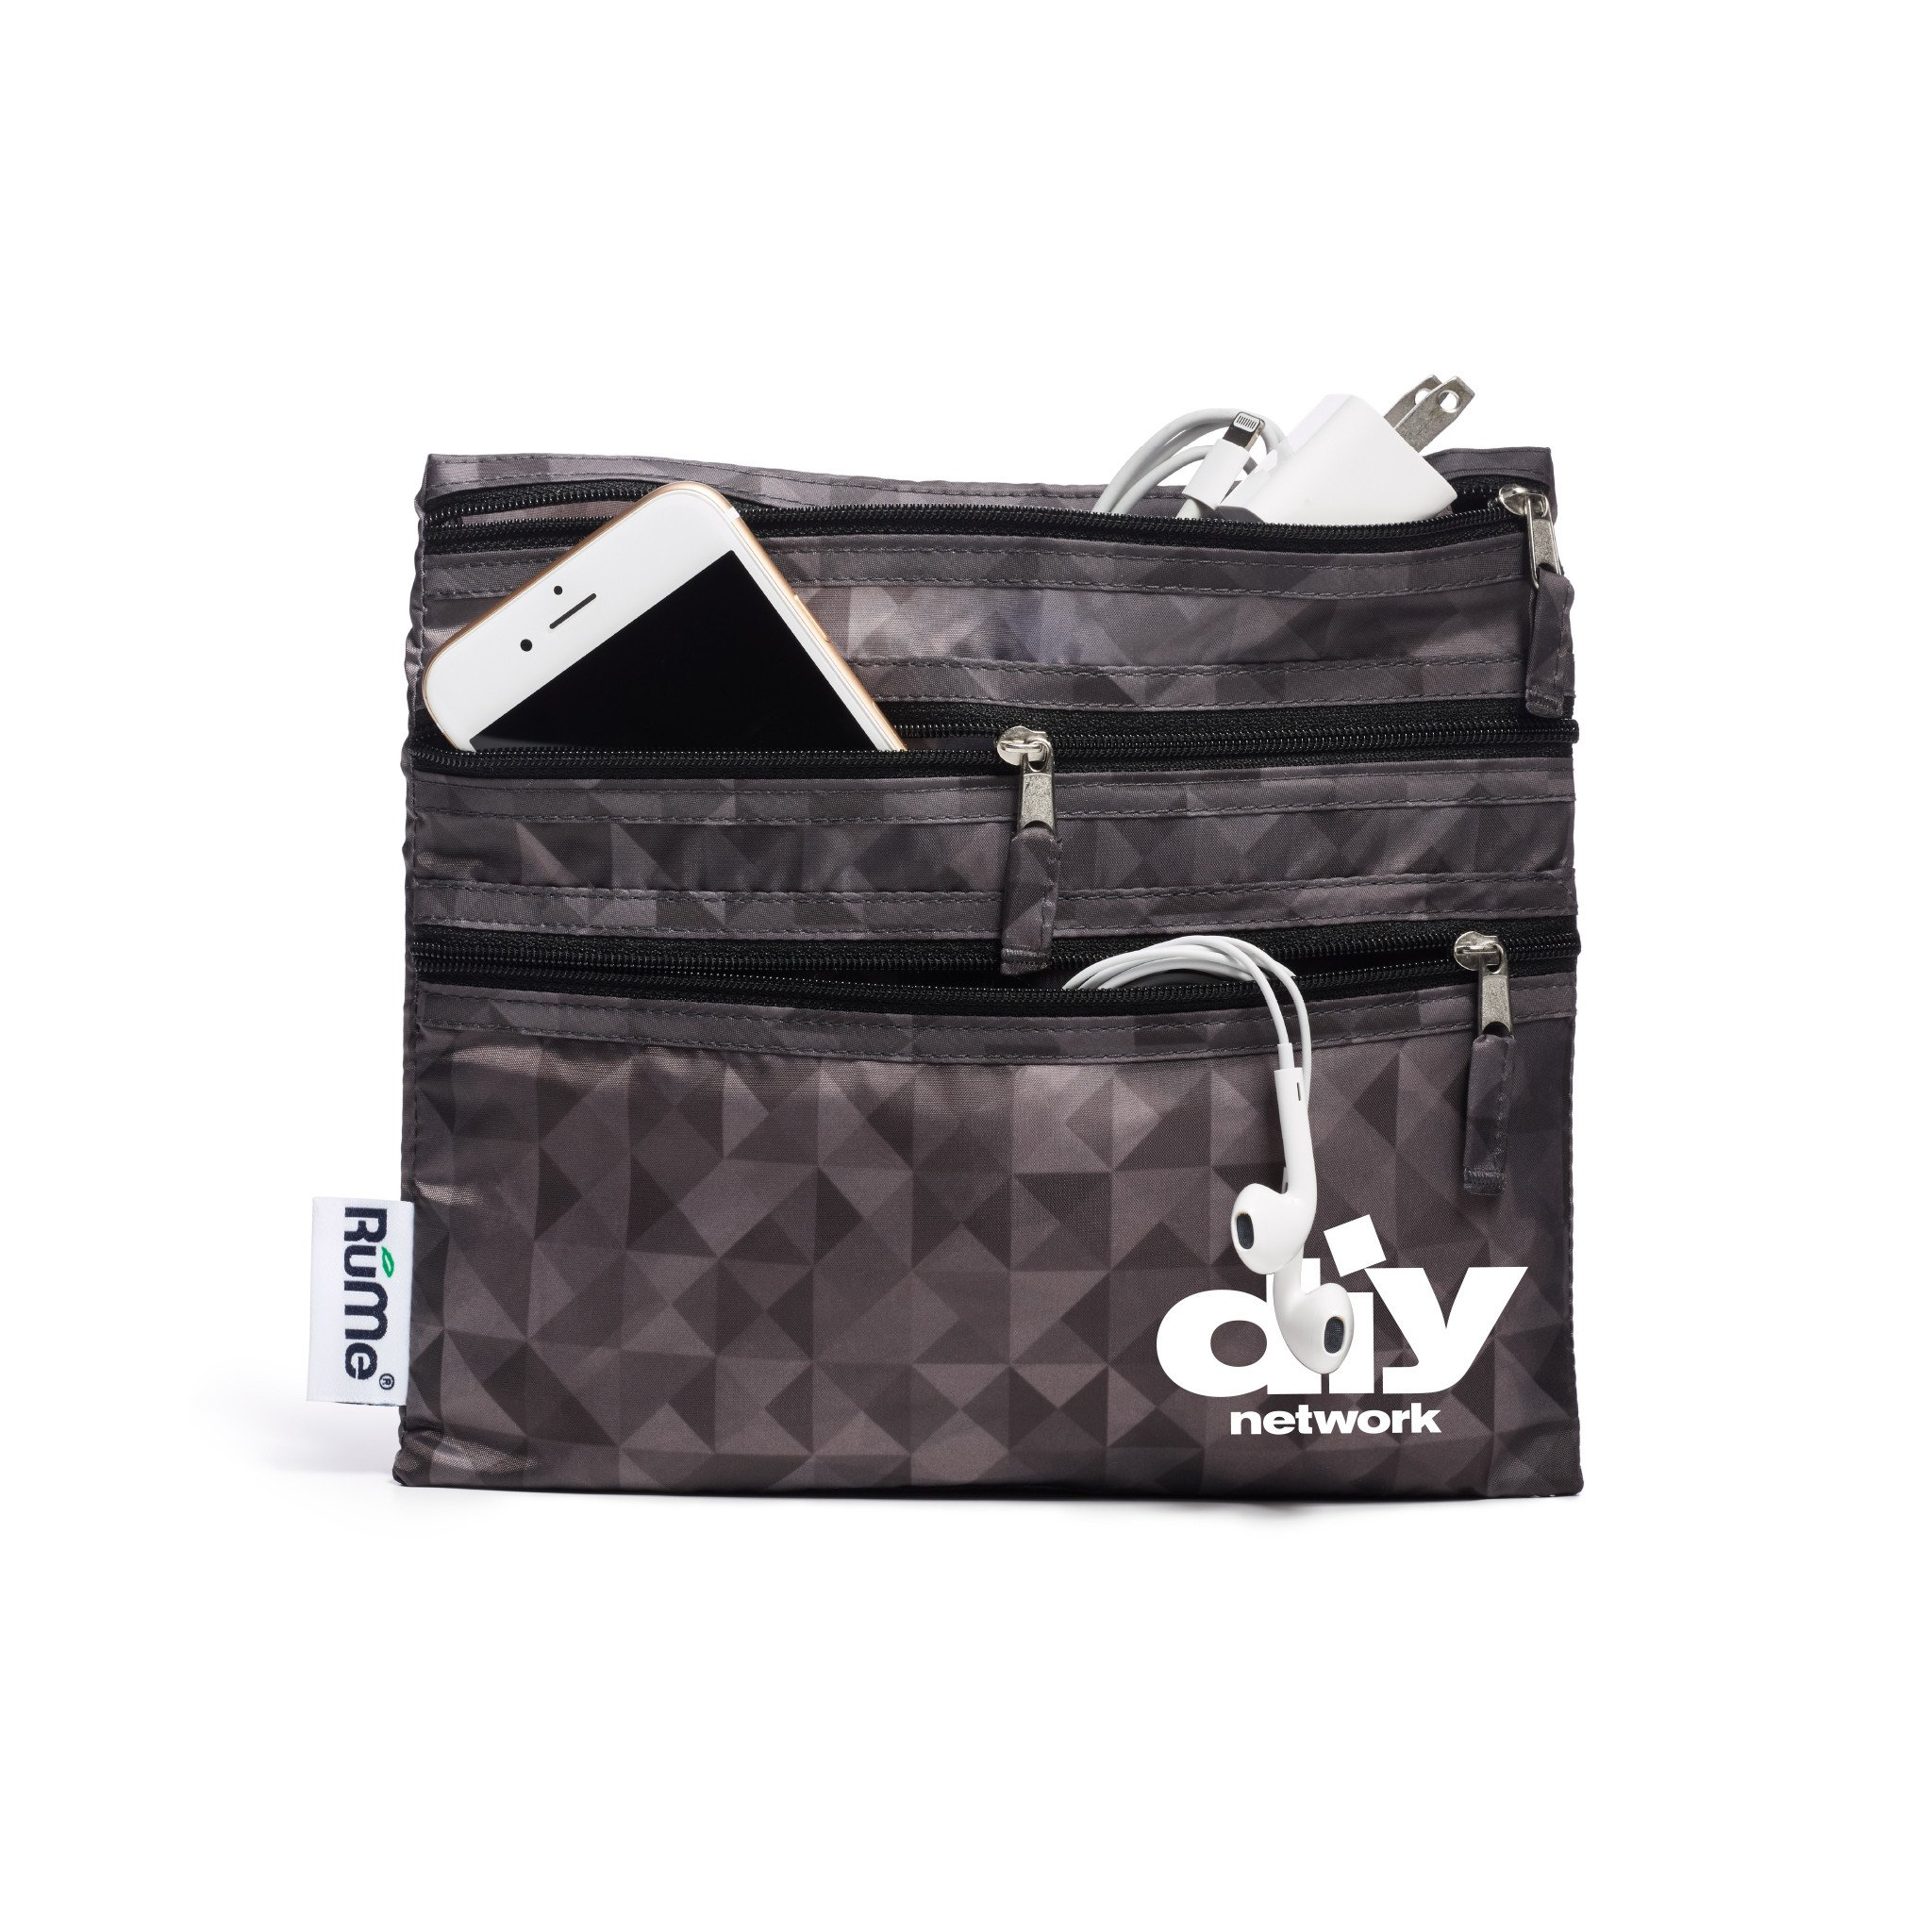 Six. - Multi use bags that your logo belongs on.